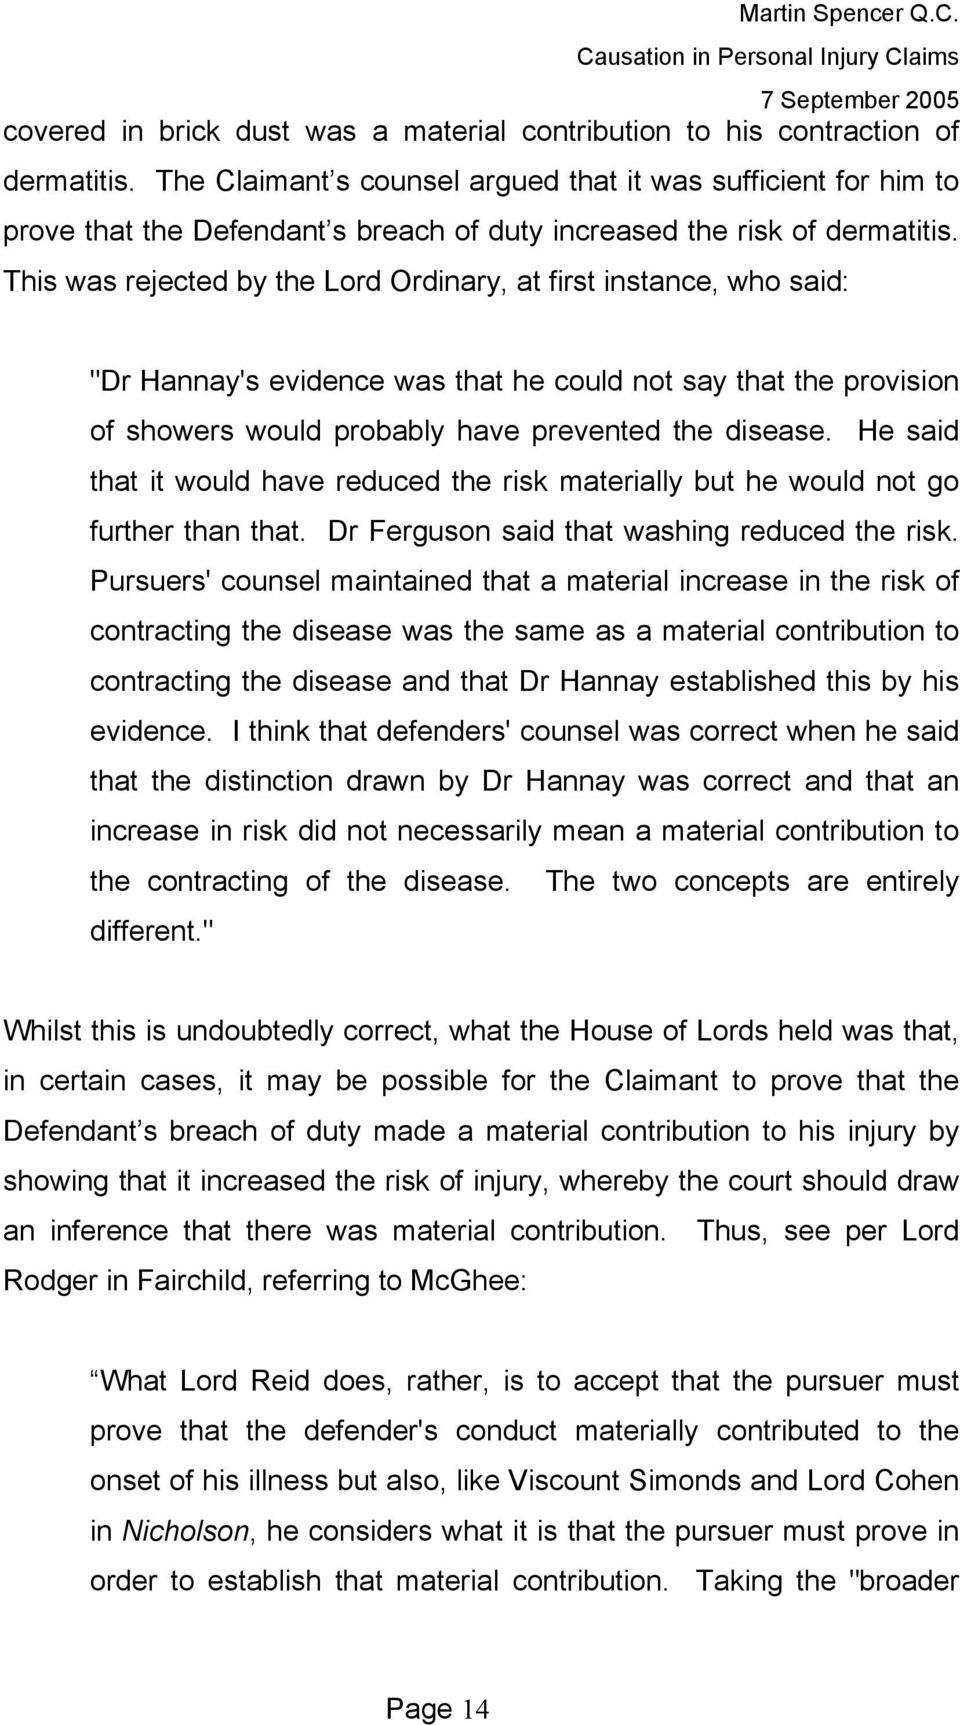 "This was rejected by the Lord Ordinary, at first instance, who said: ""Dr Hannay's evidence was that he could not say that the provision of showers would probably have prevented the disease."